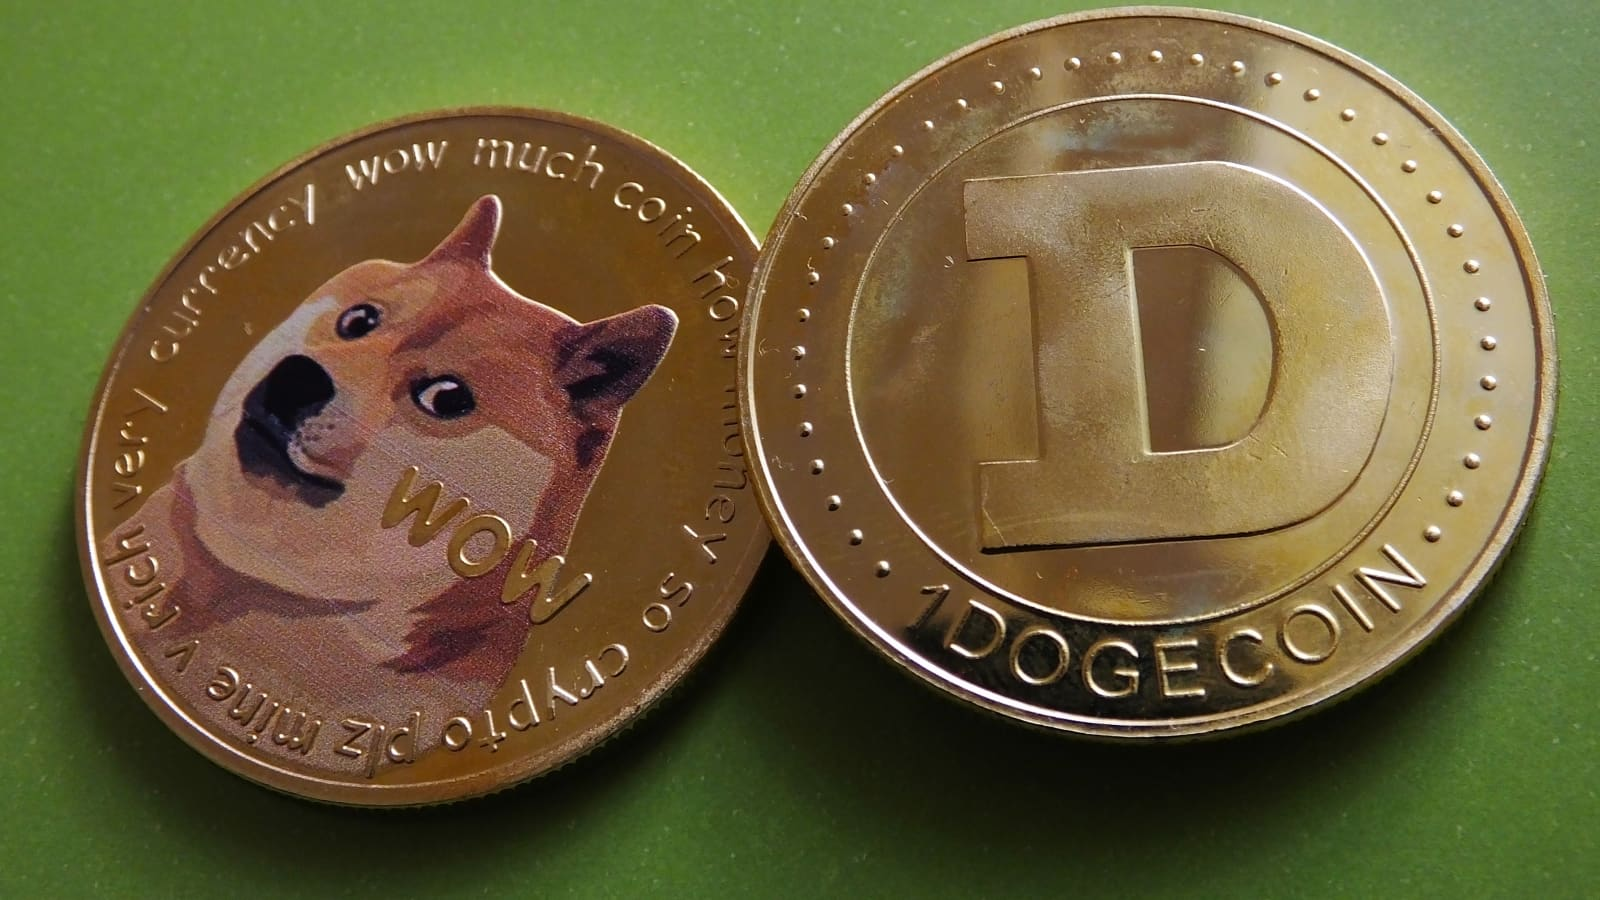 Dogecoin mining coup causes $119 million loss to Turkish investors